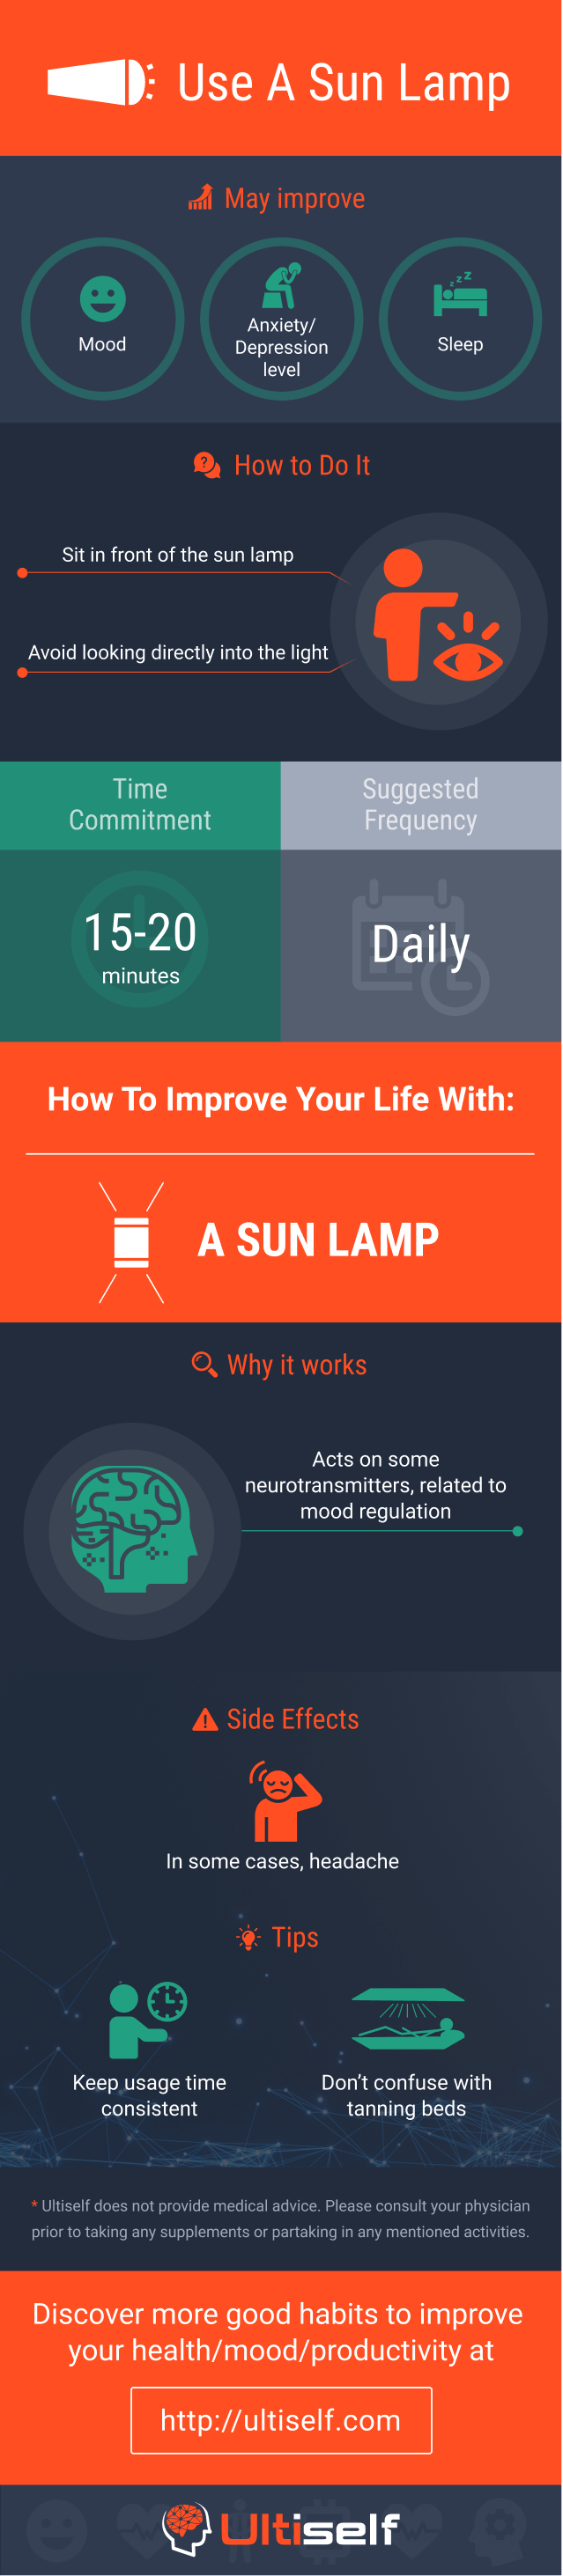 Use Sun Lamp infographic